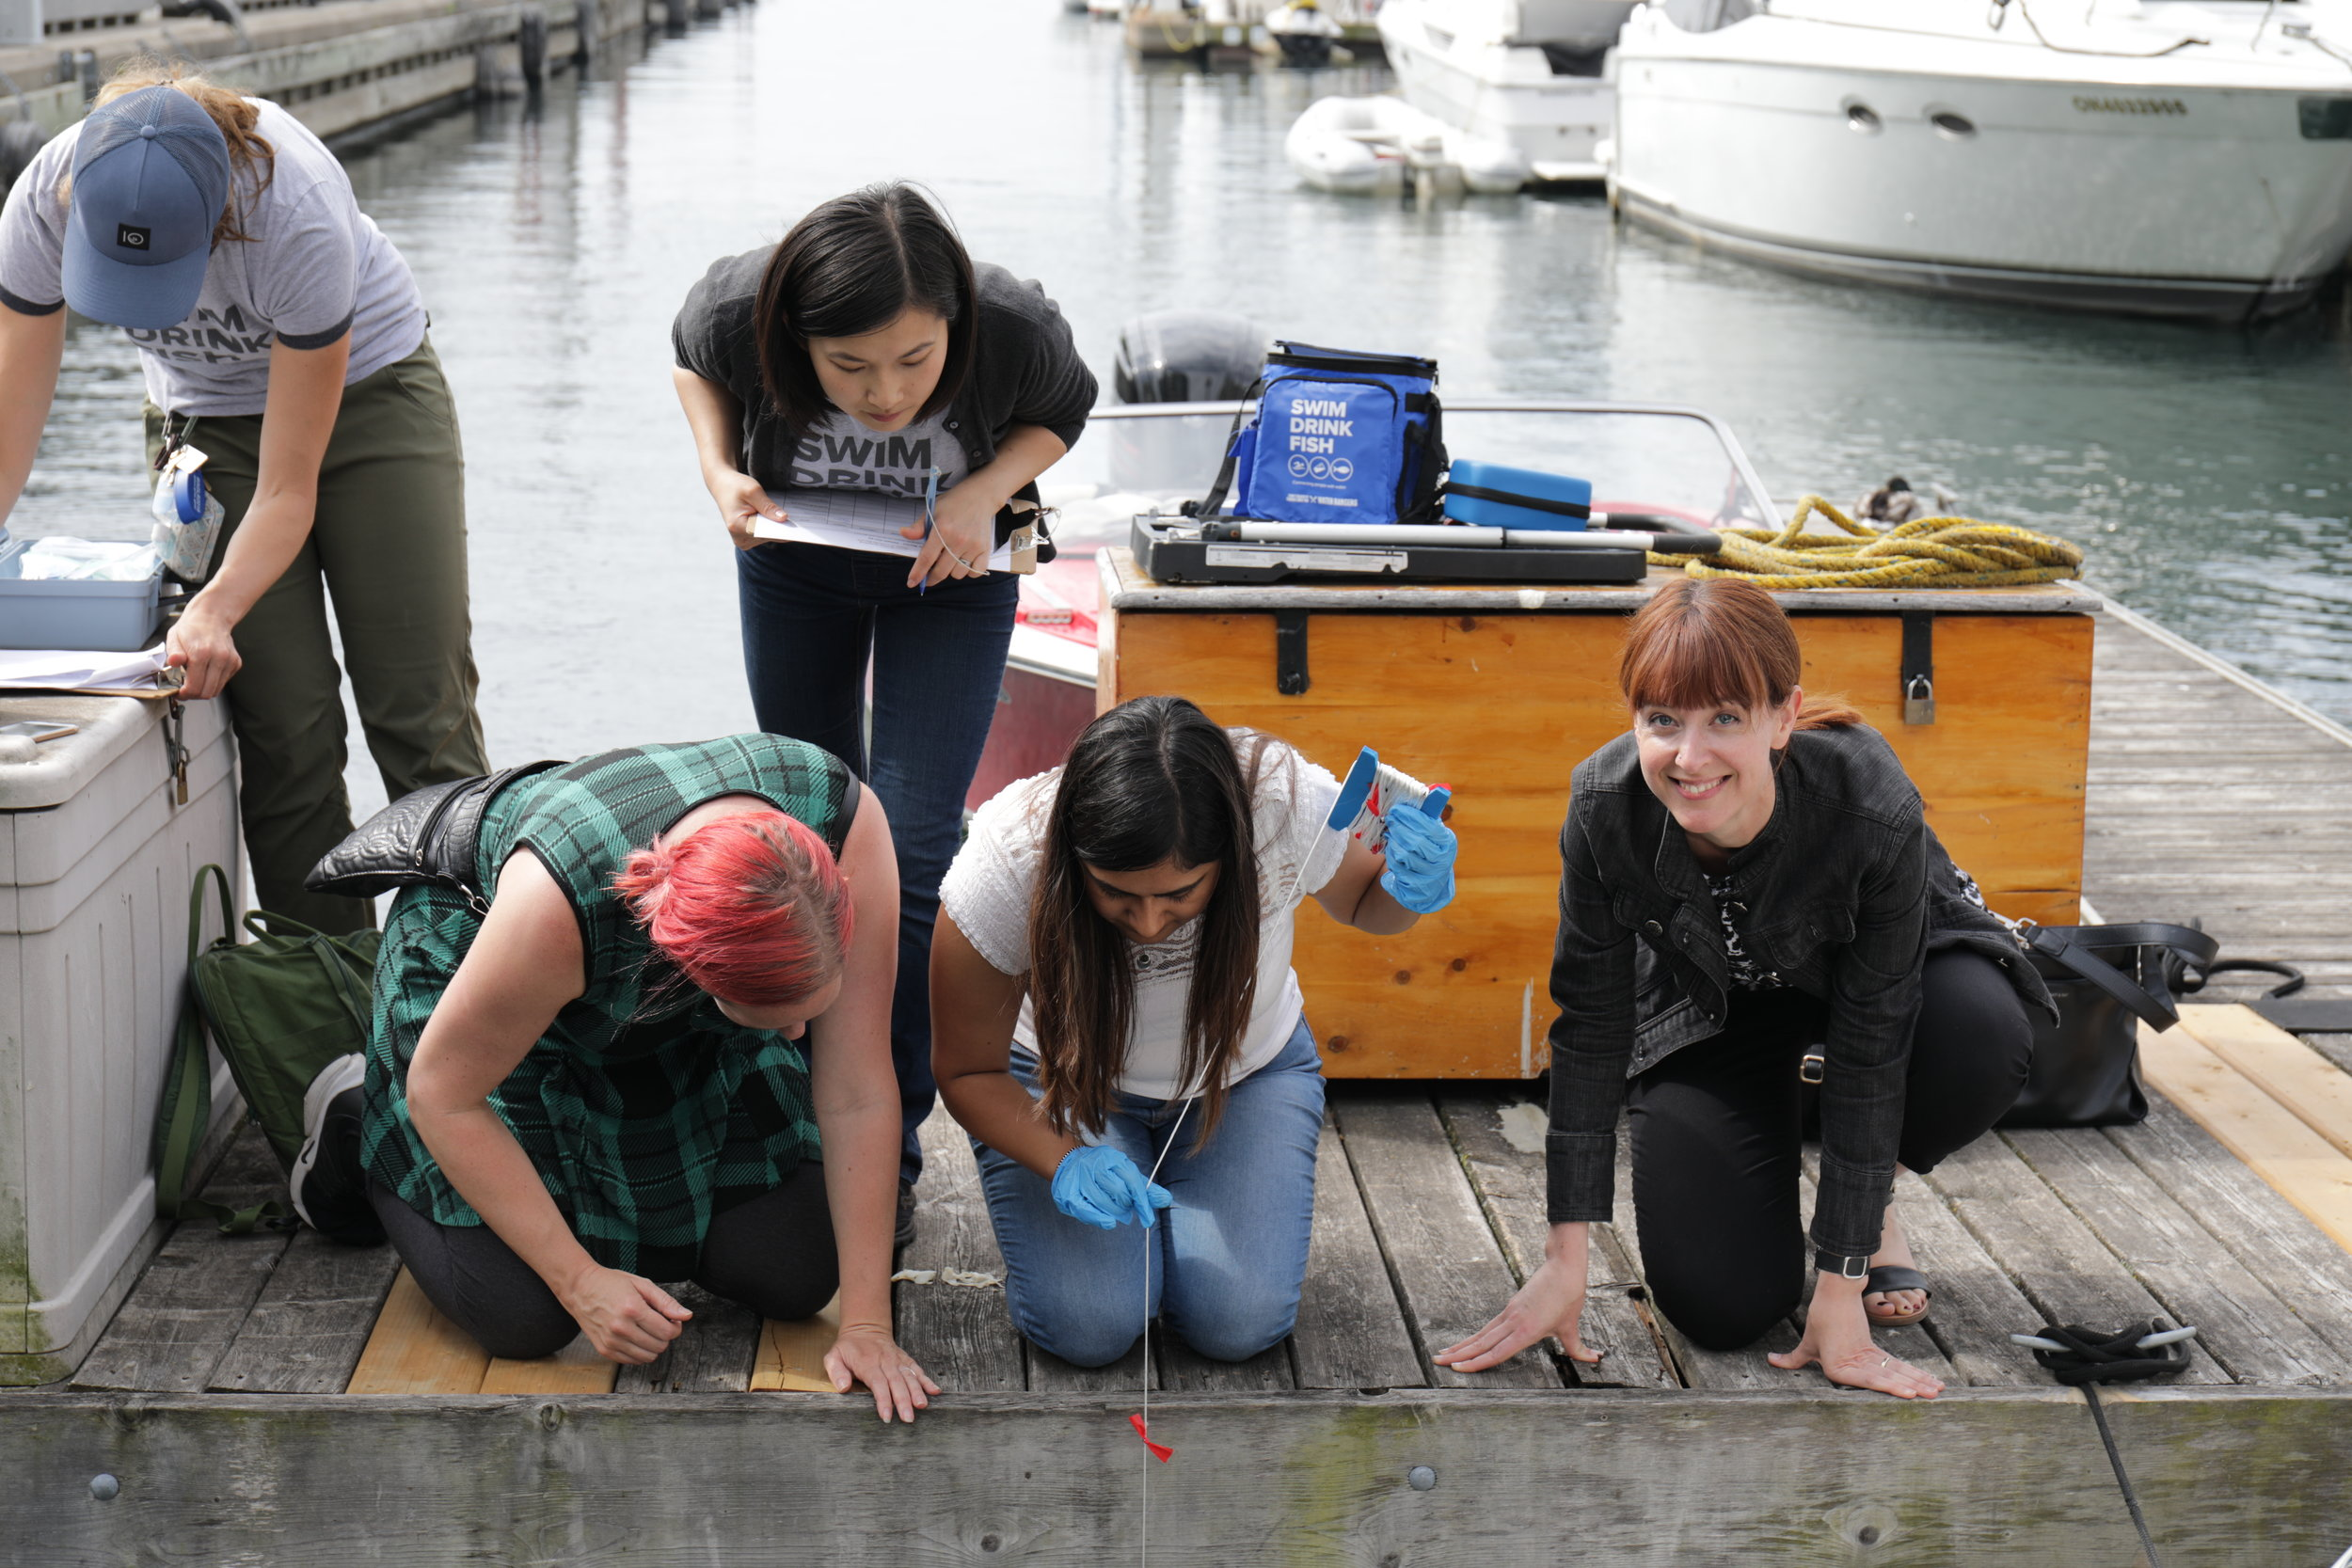 Me, far right. That's the smile of someone who really loves water quality monitoring.